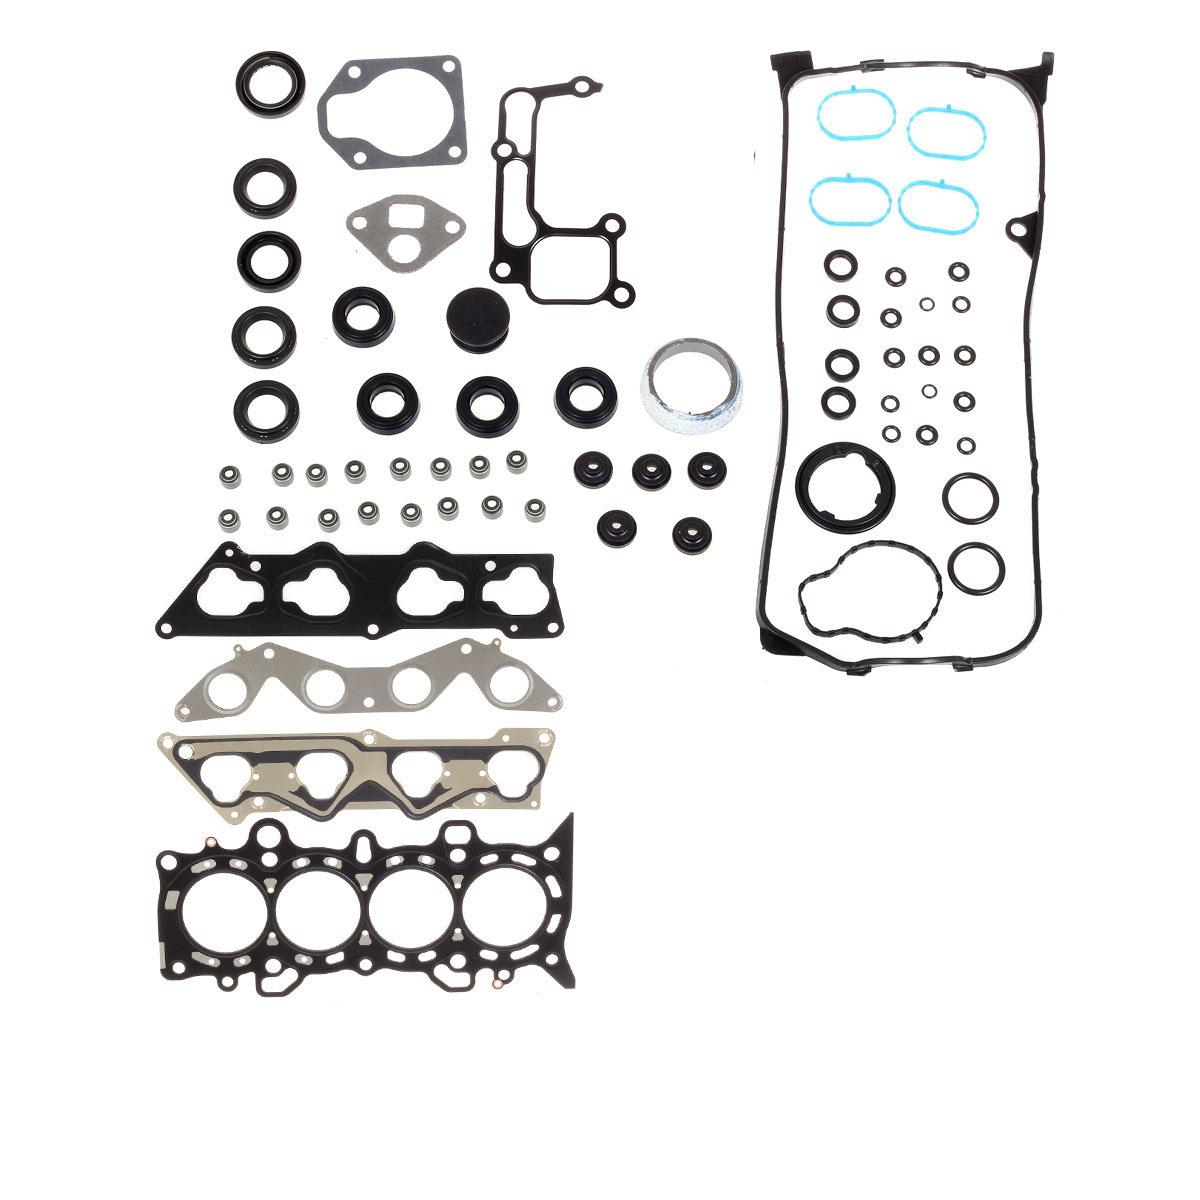 Front End Clunk Spring Seats 69492 in addition KCA394 2013 2014 Focus ST EcoBoost Whiteline Rear Control Arm Upper Bushing Camber furthermore 2001 Mitsubishi Eclipse Gs Fuse Box Diagram additionally 231935887804 in addition 111952060931. on honda civic shocks and struts